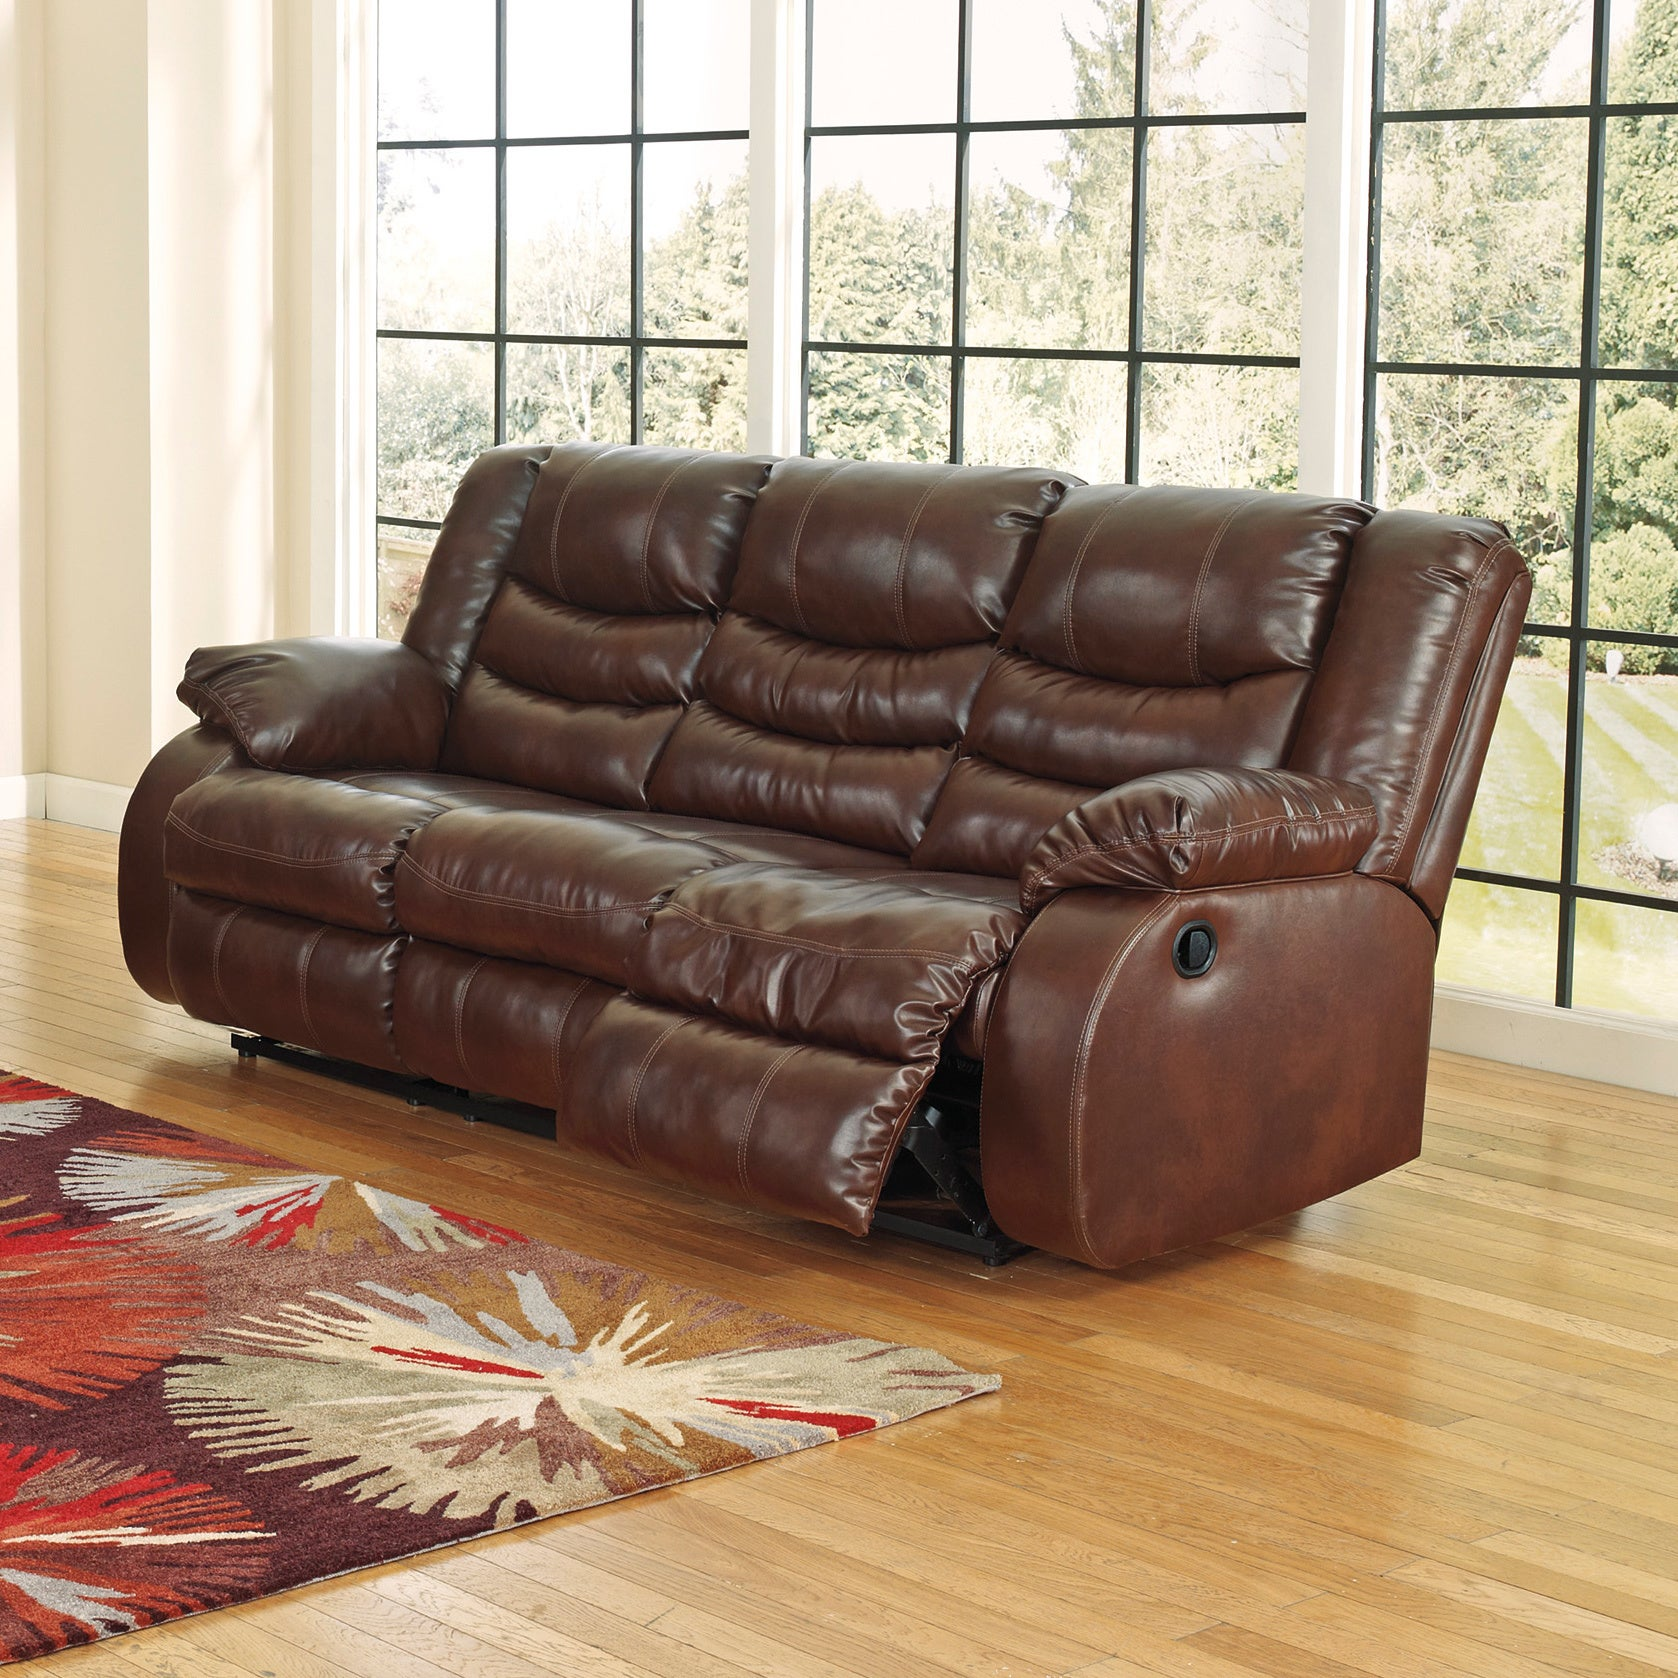 Signature Design By Ashley Linebacker Durablend Espresso Reclining Sofa Free Shipping Today 9124059